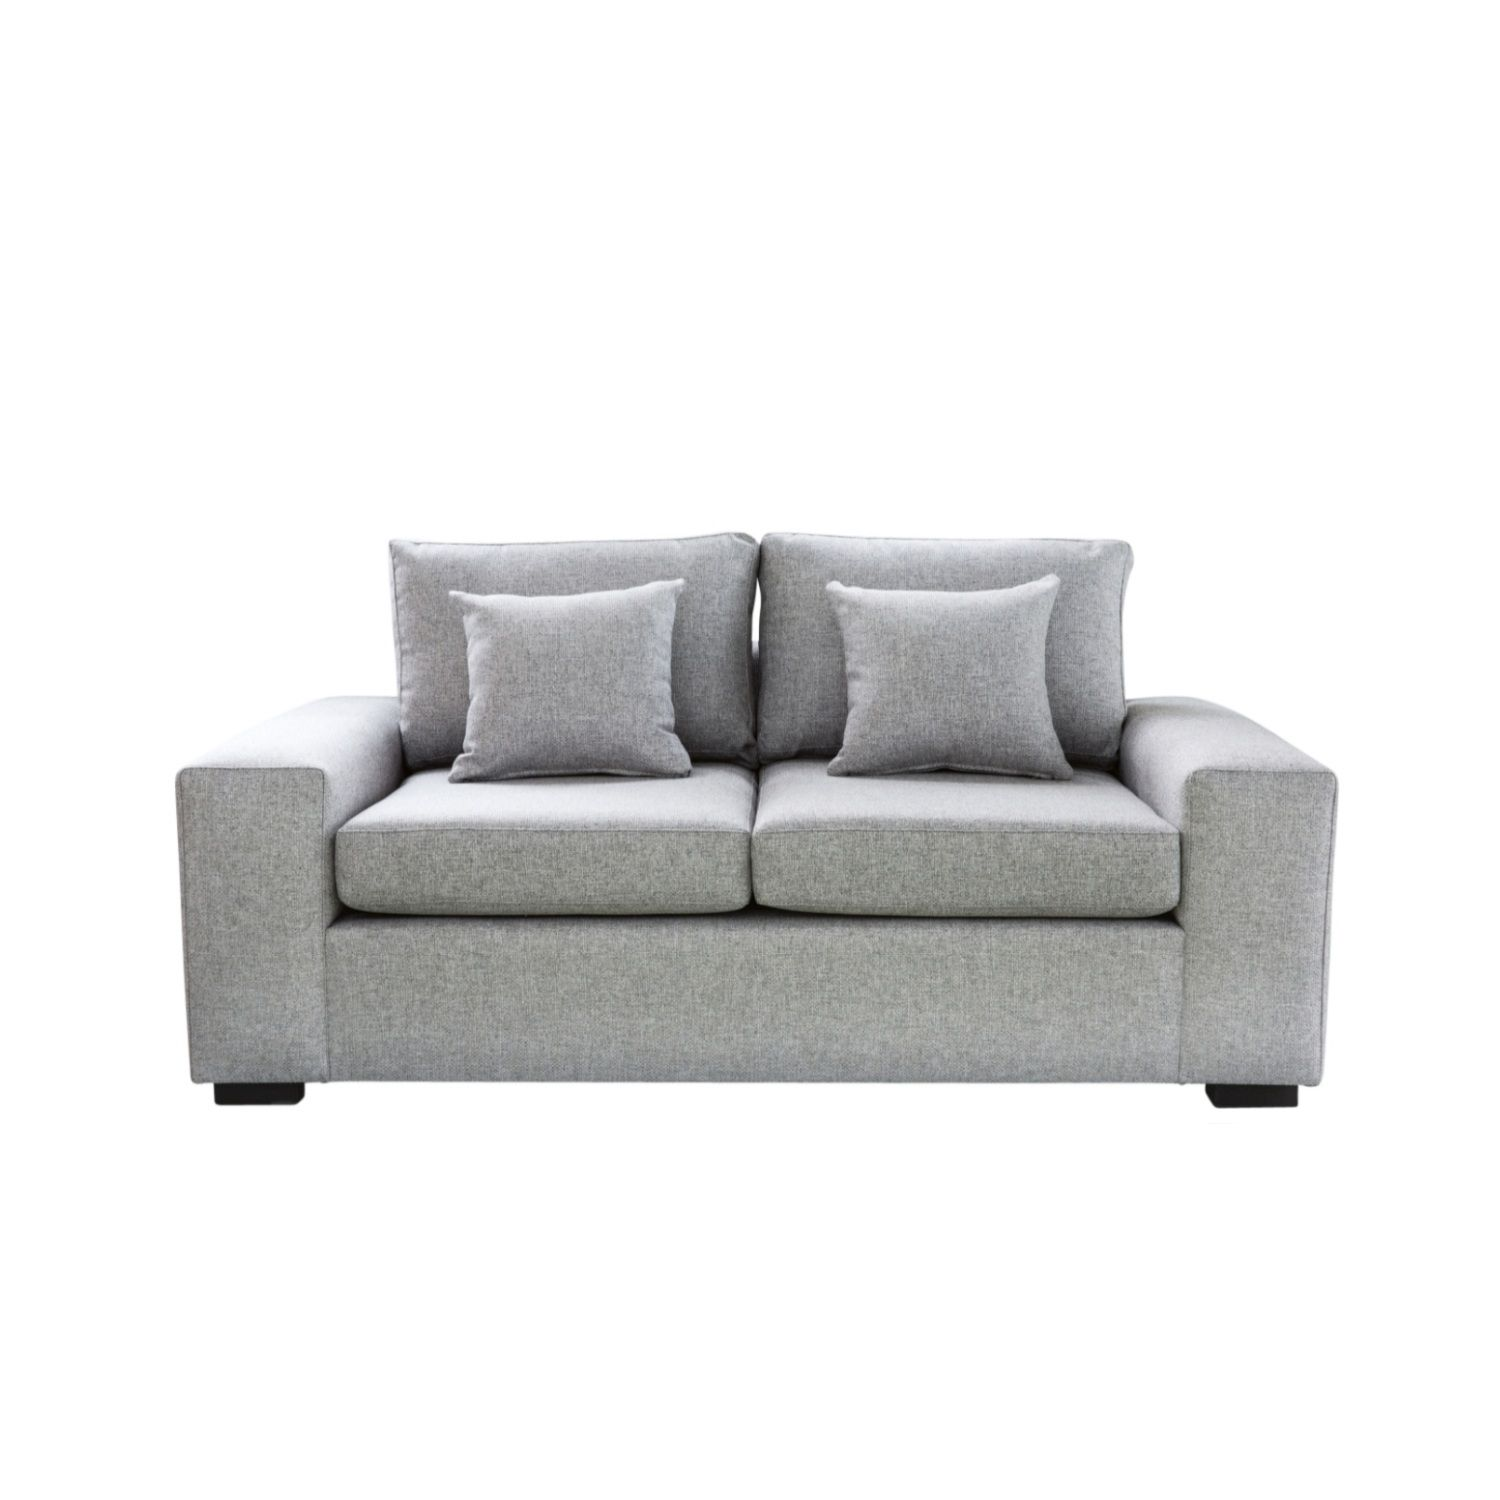 2 Seater Byron Fabric Sofa From Domayne Online